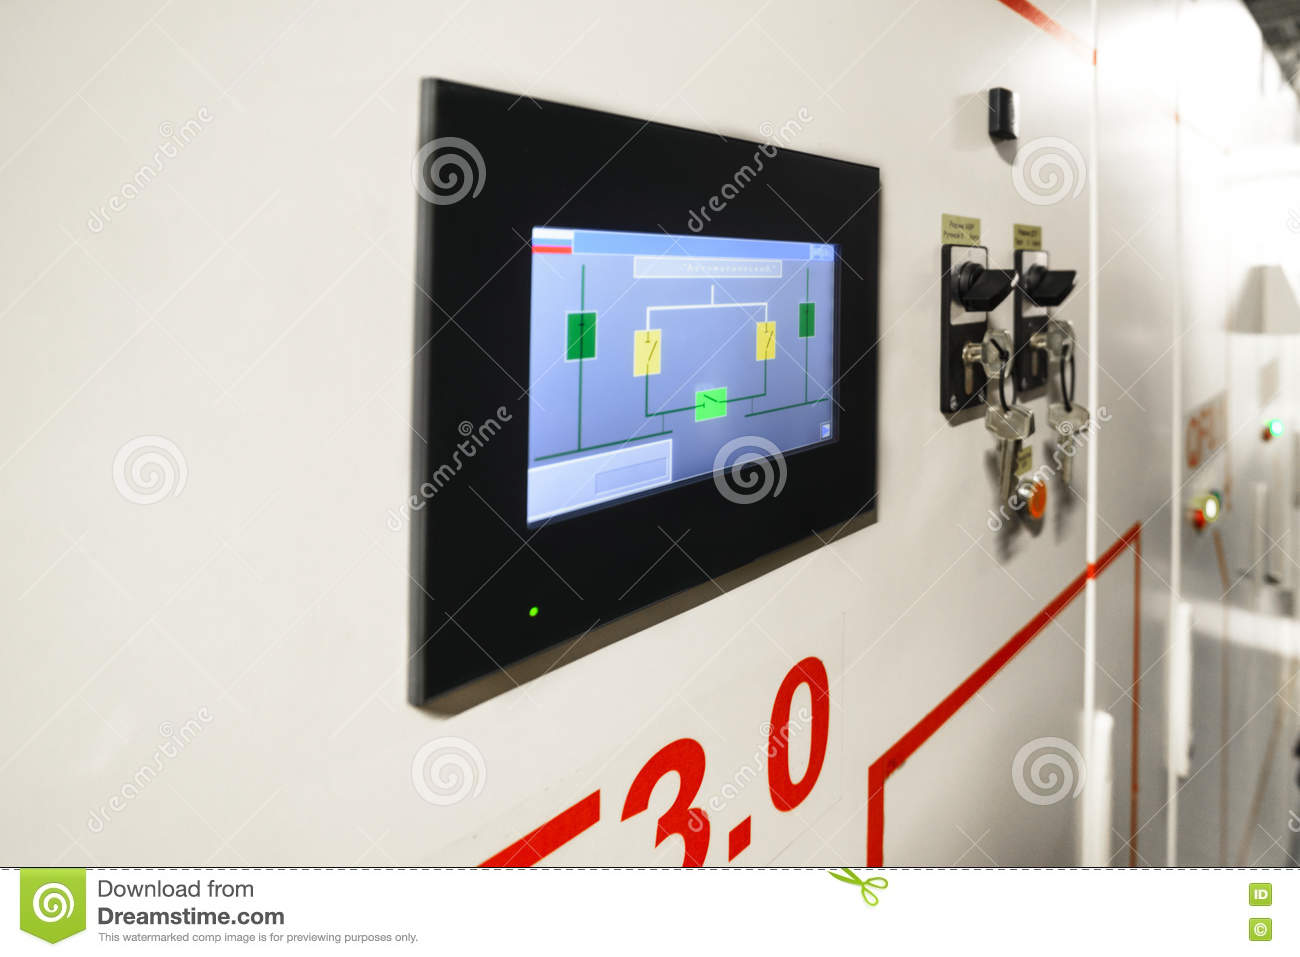 Electric Switchboard Stock Images Download 1065 Photos Free Photography Meter Messy Electrical Installation Control Display On The Modern